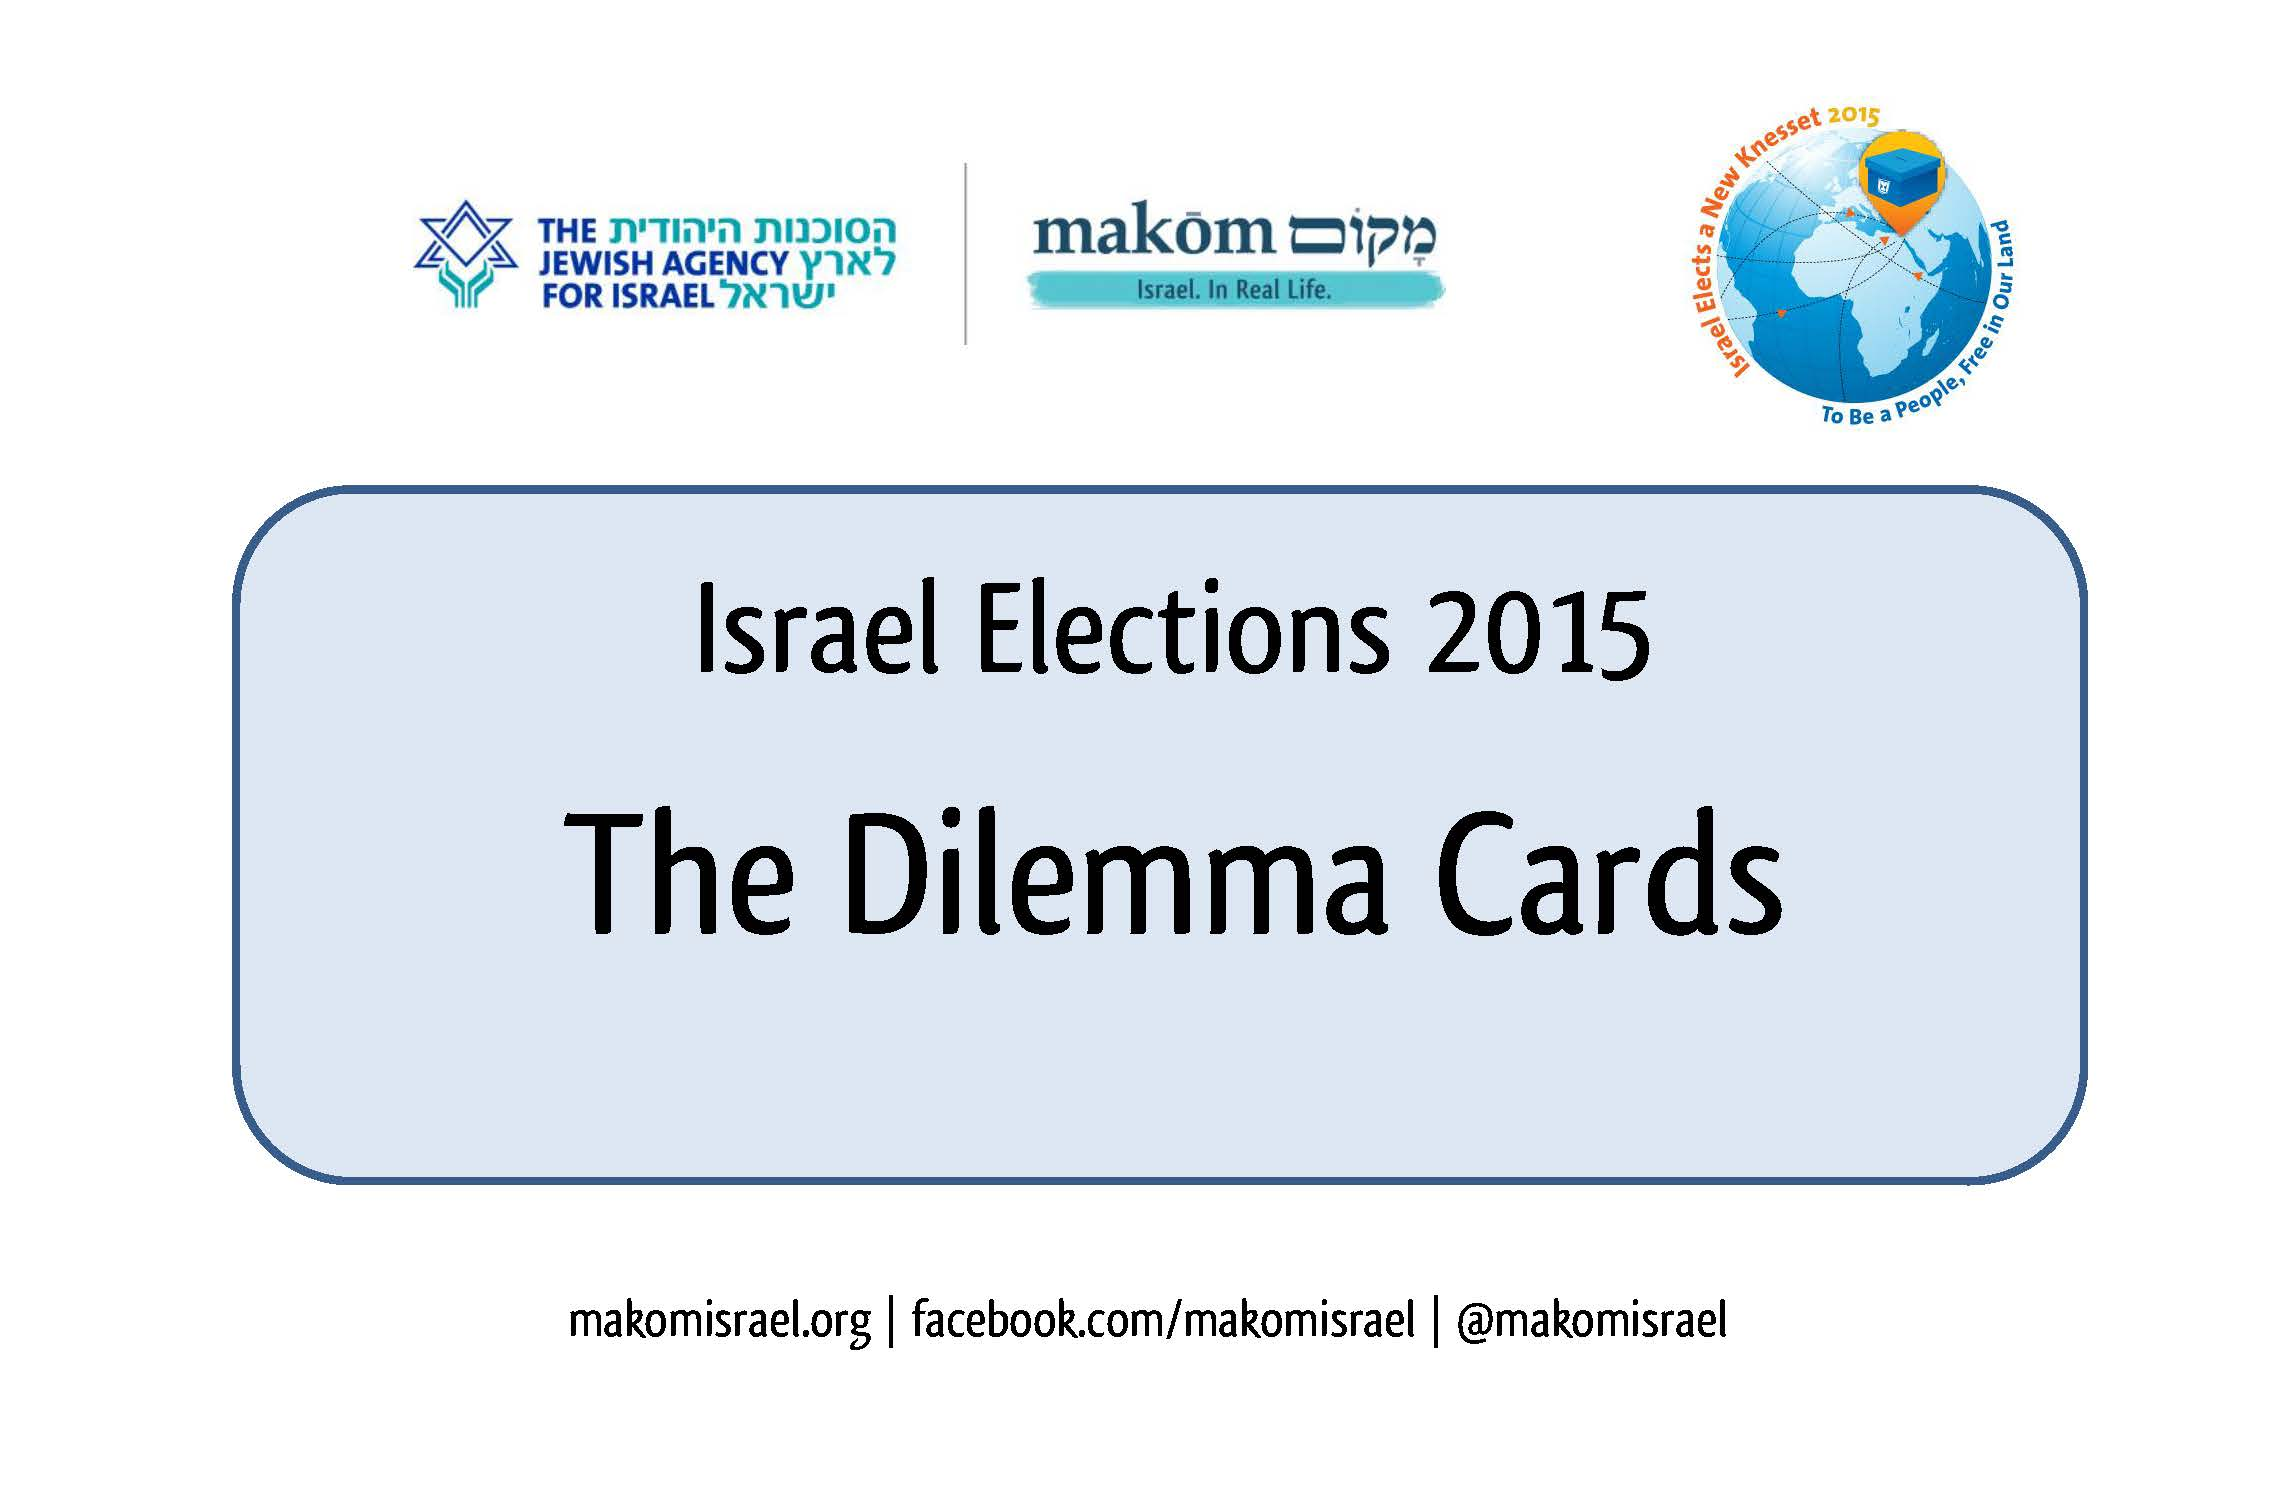 page1 from The Makom Dilemma Cards